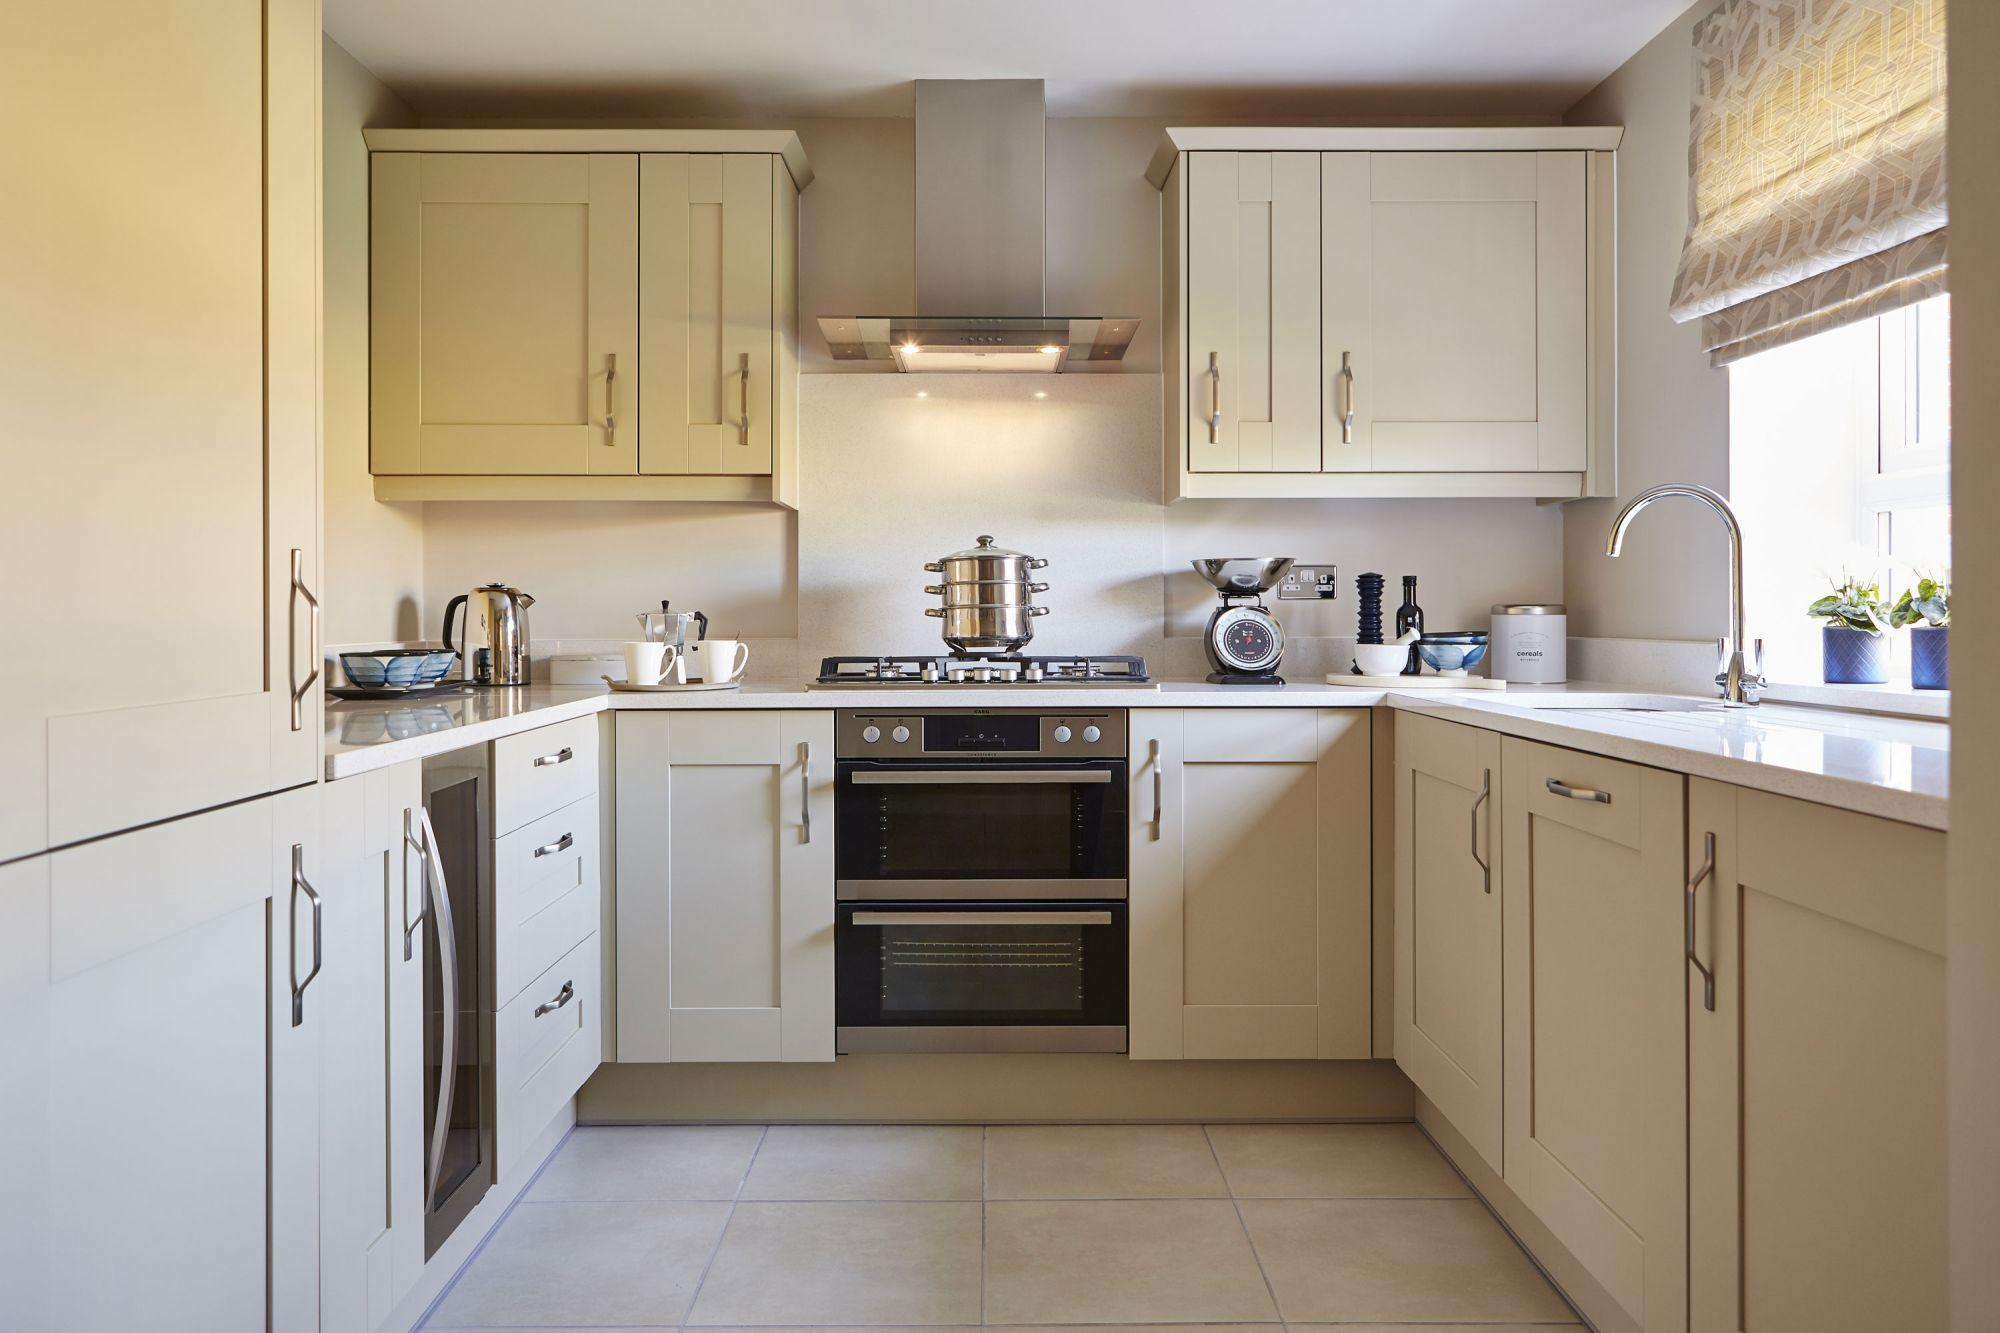 Typical Somerfield fitted kitchen